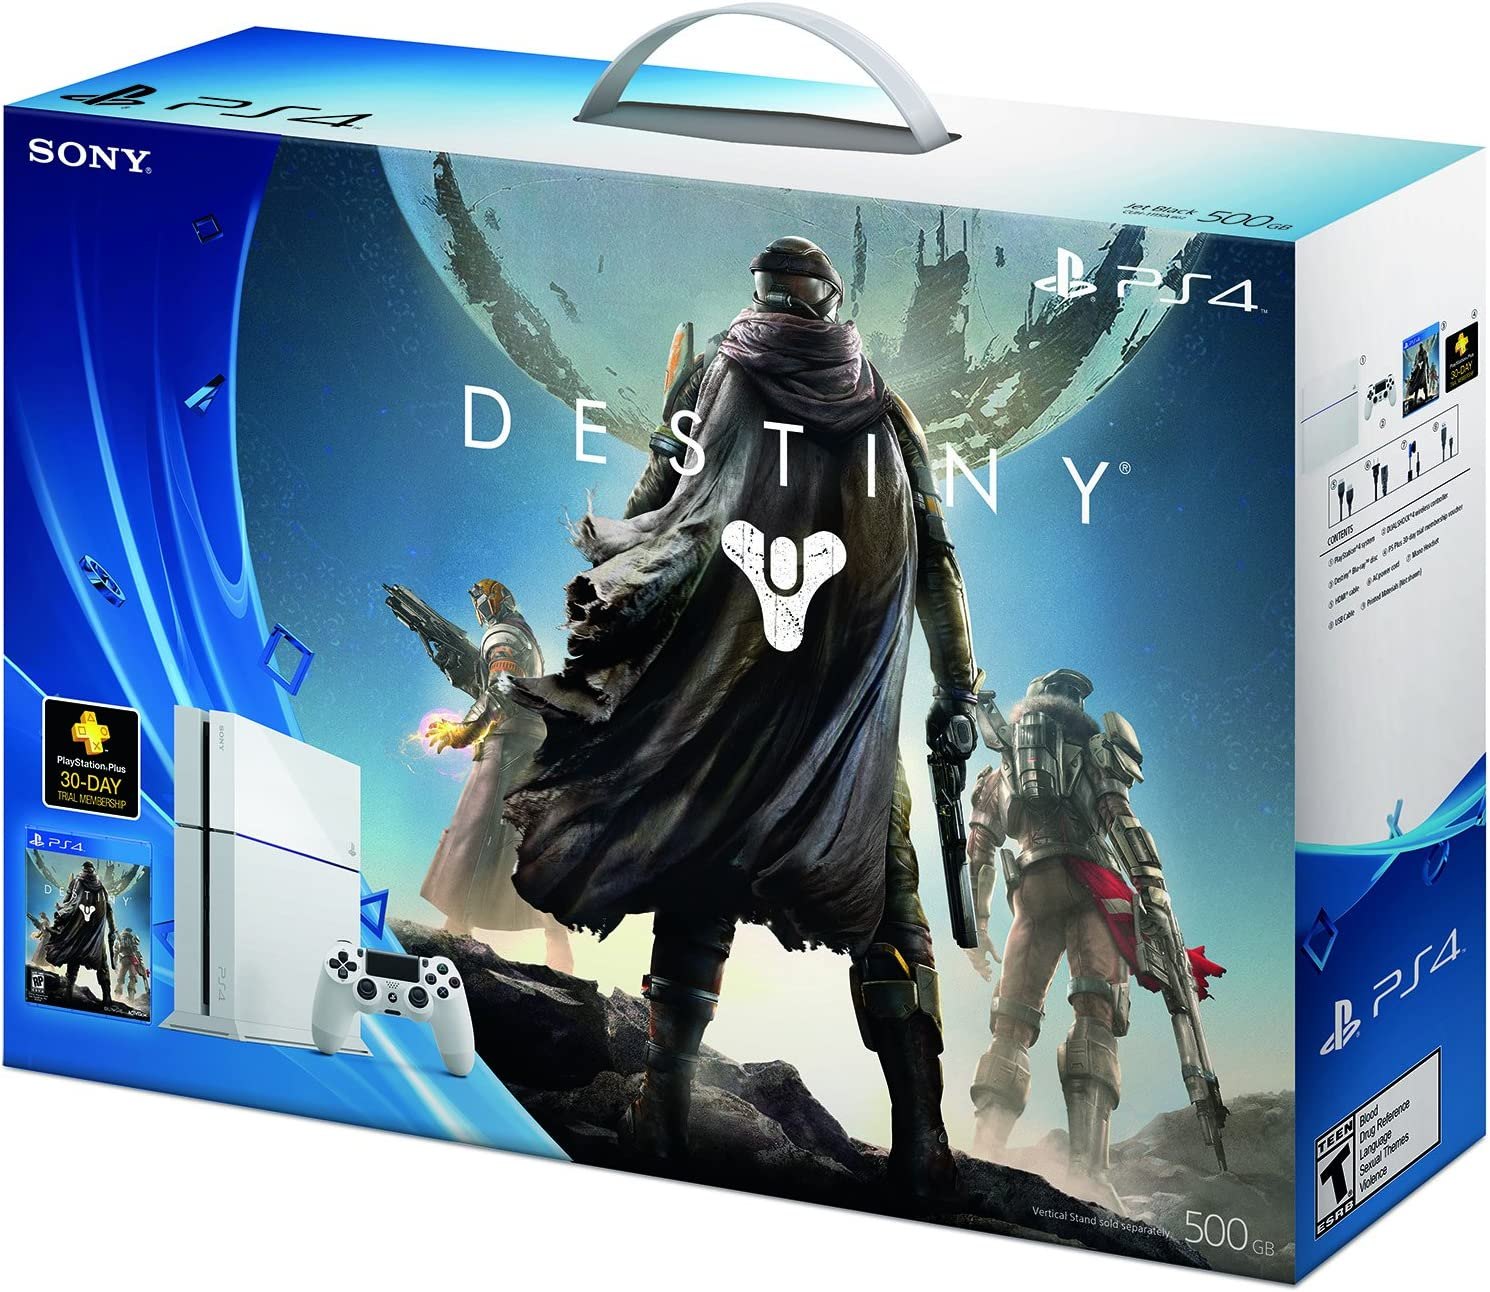 Sony PlayStation 4 Console - Destino Bundle [Discontinued]: Amazon.es: Videojuegos